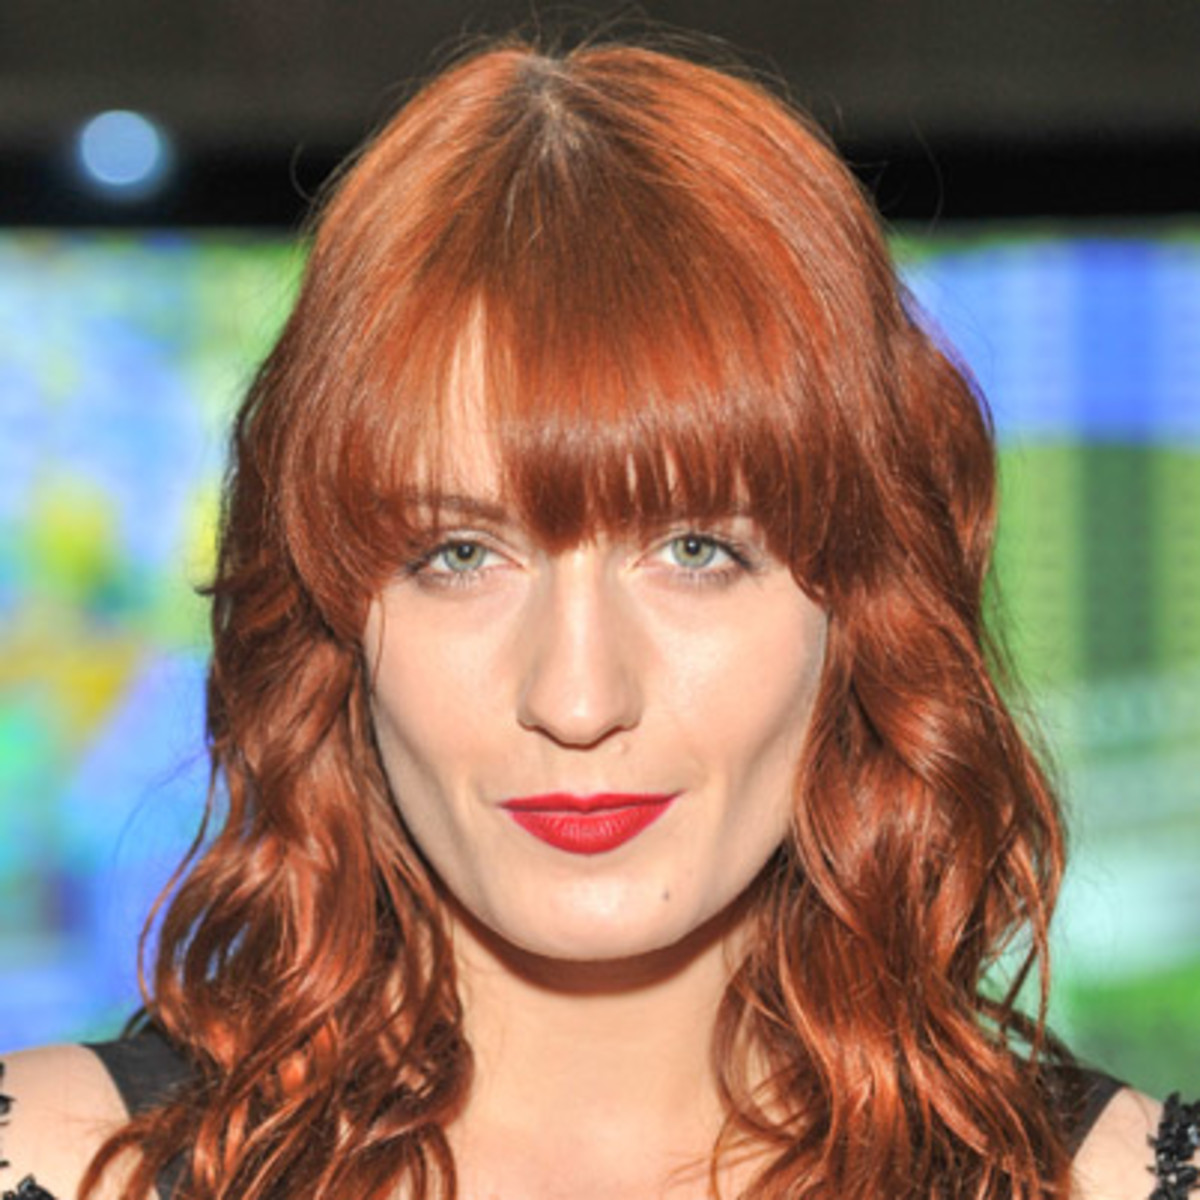 Photos Florence Welch naked (96 photos), Topless, Paparazzi, Selfie, cameltoe 2006